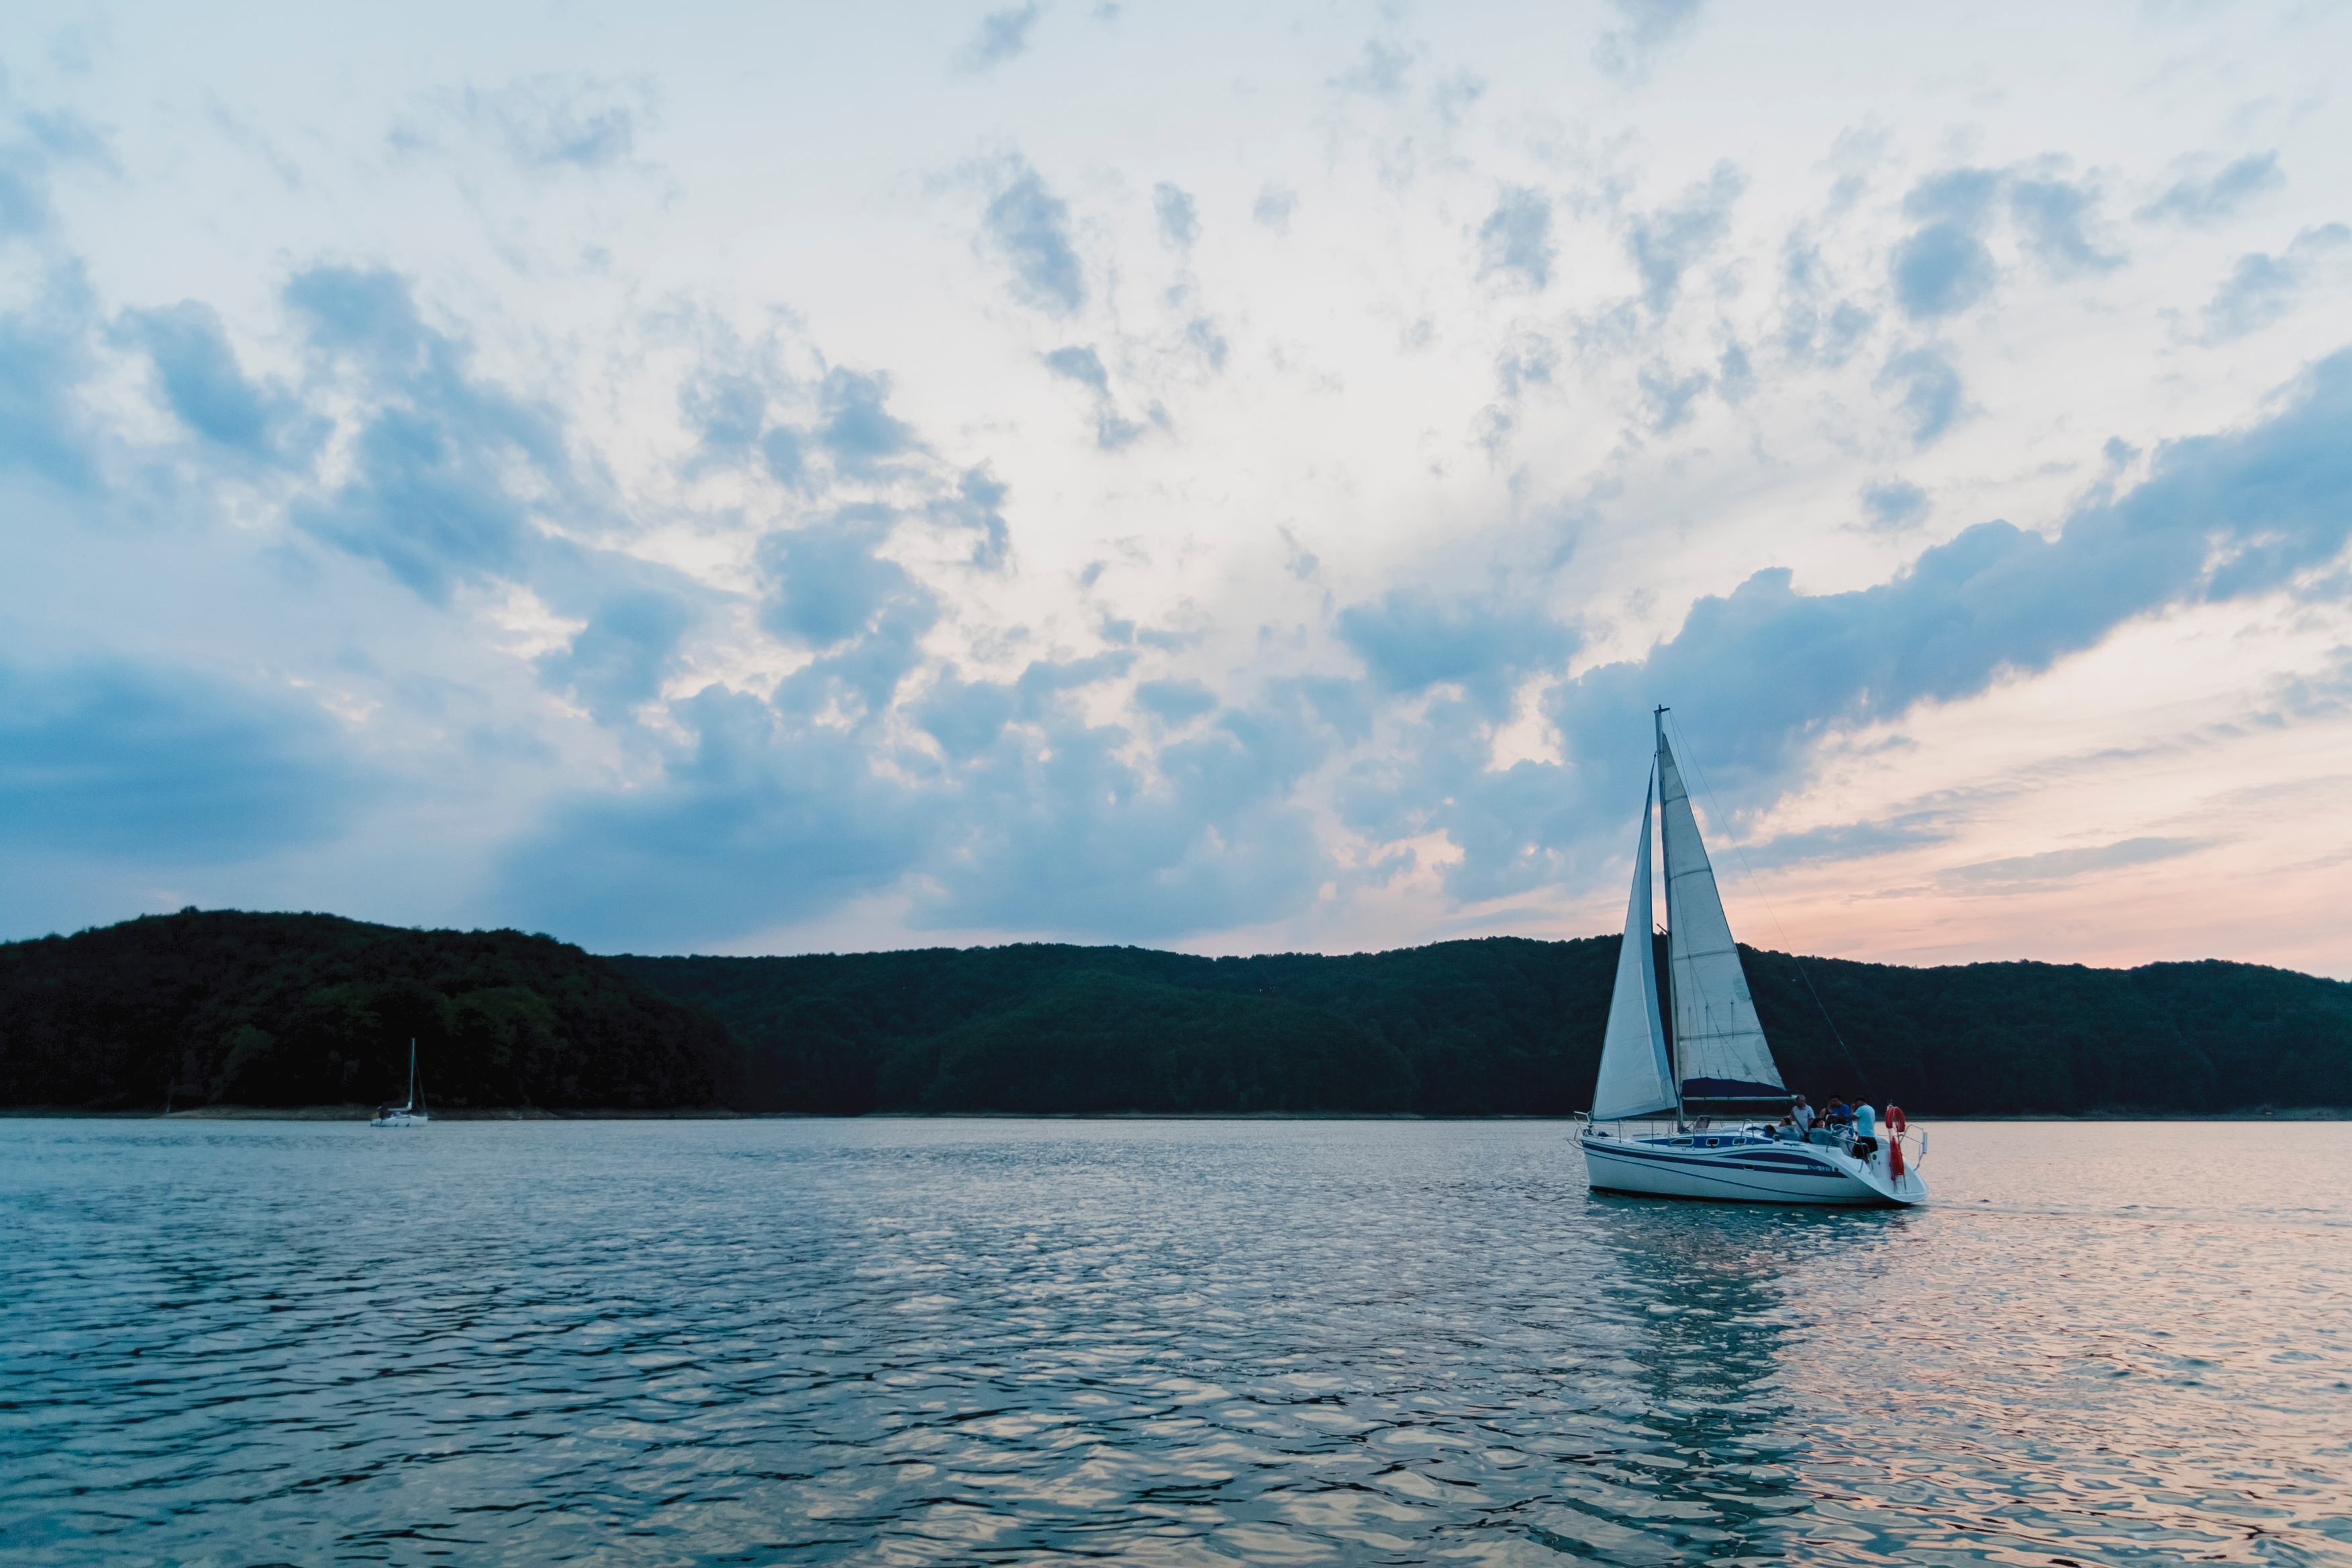 Morrow Boating Accident Attorney